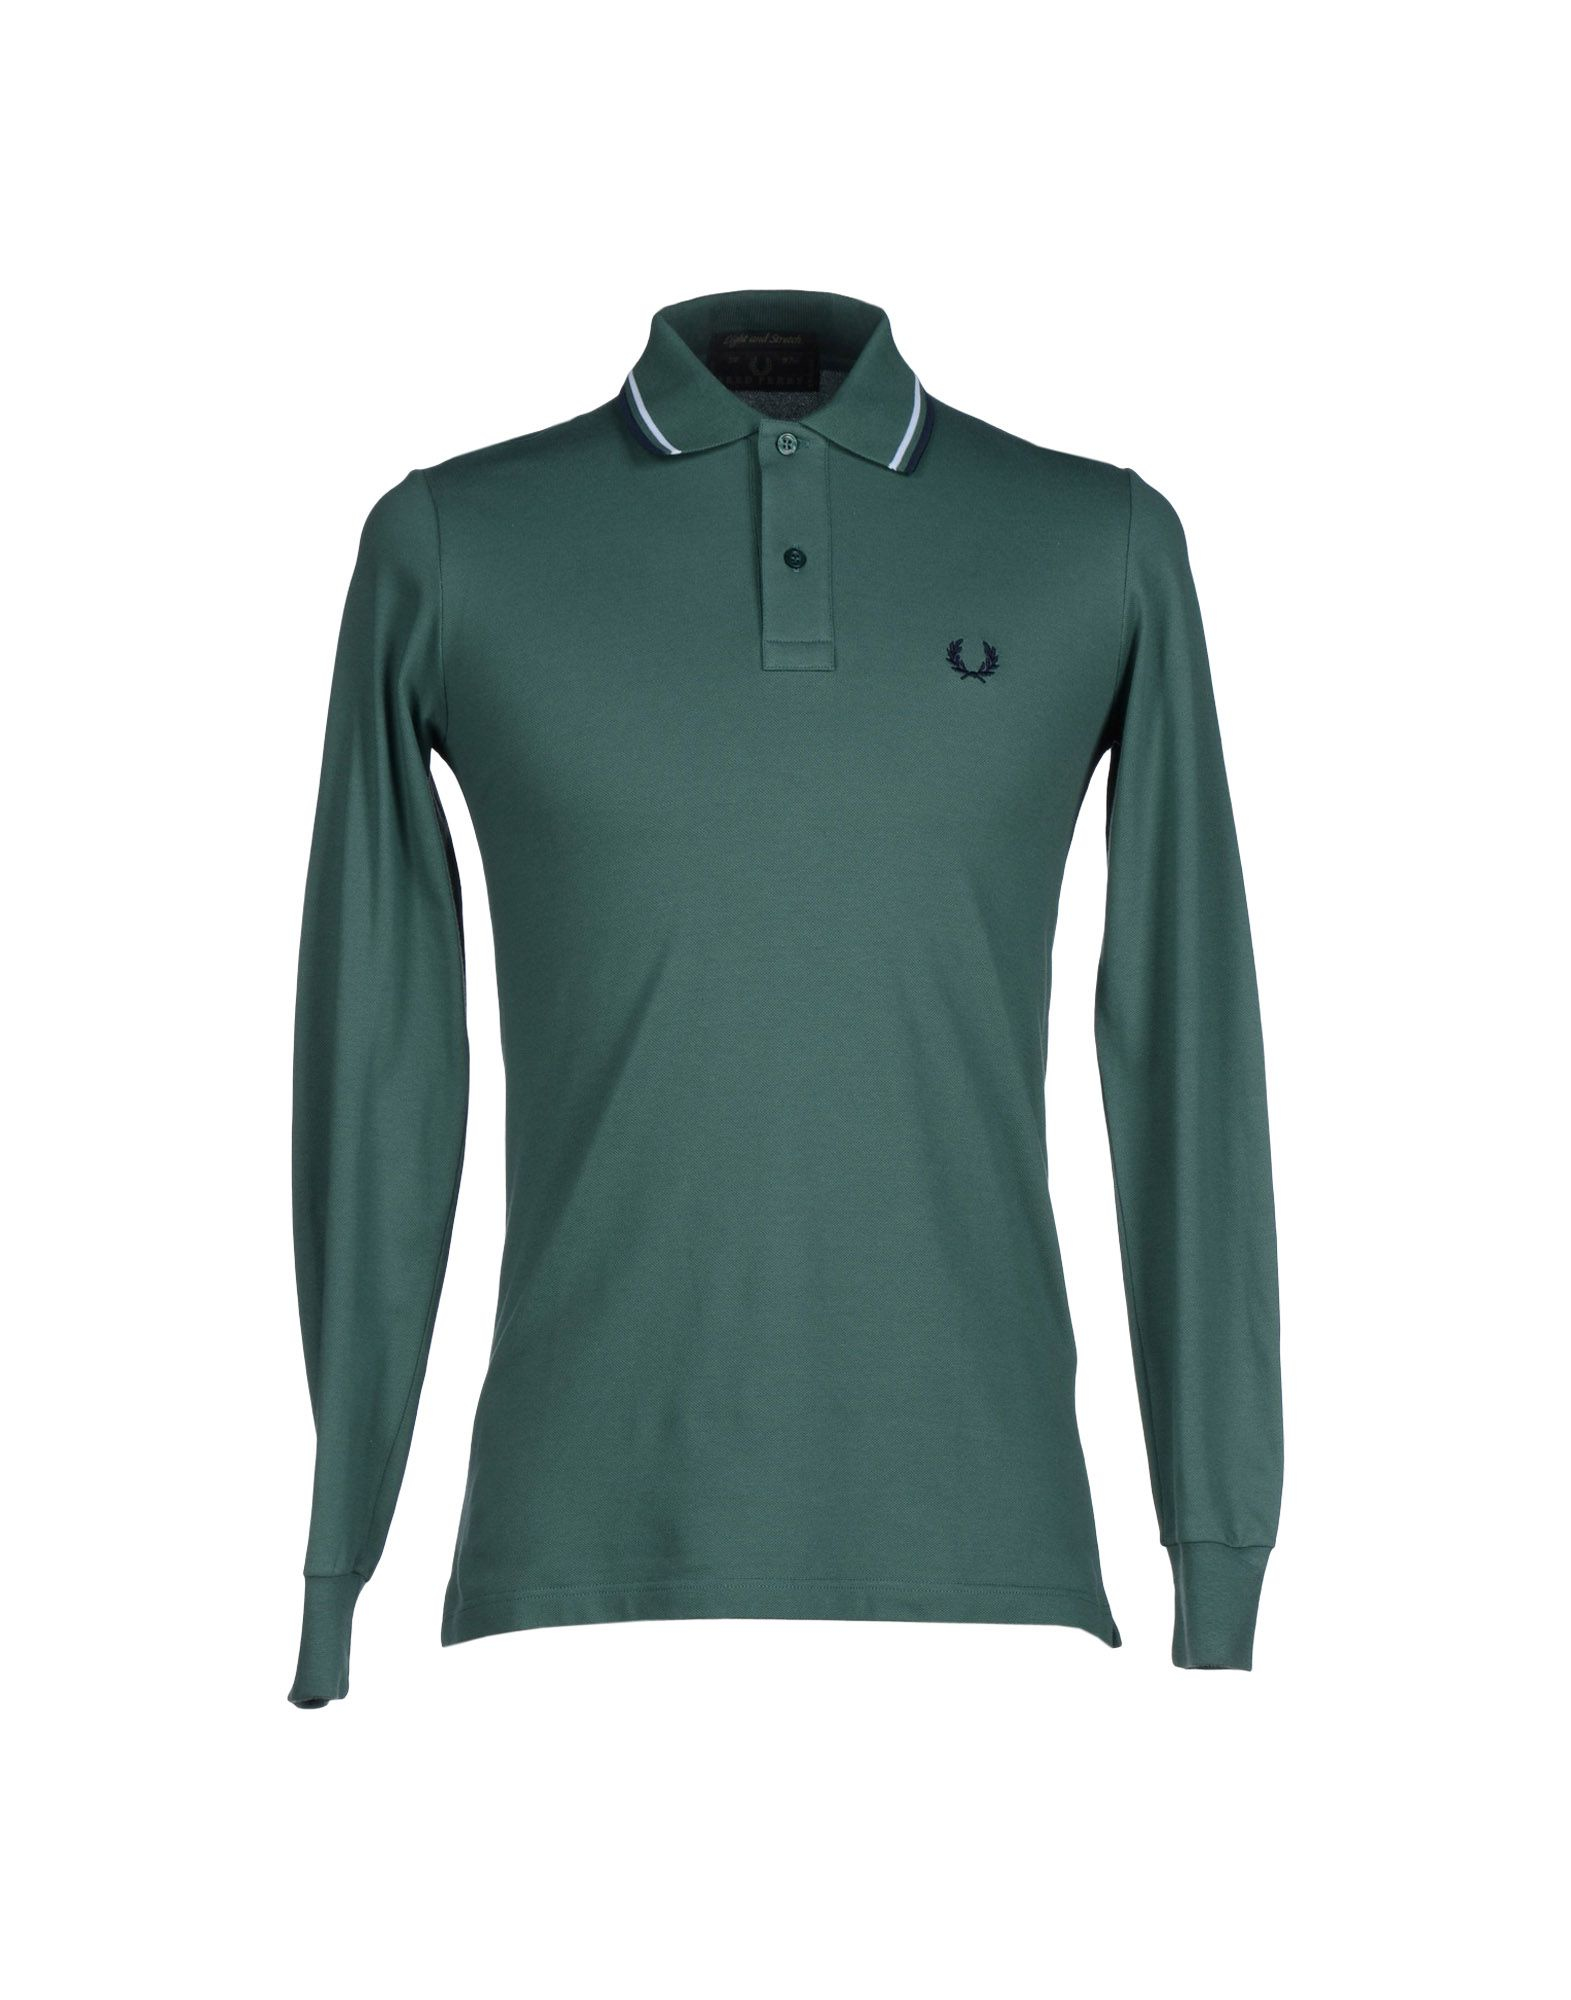 Fred perry polo shirt in green for men emerald green Emerald green mens dress shirt